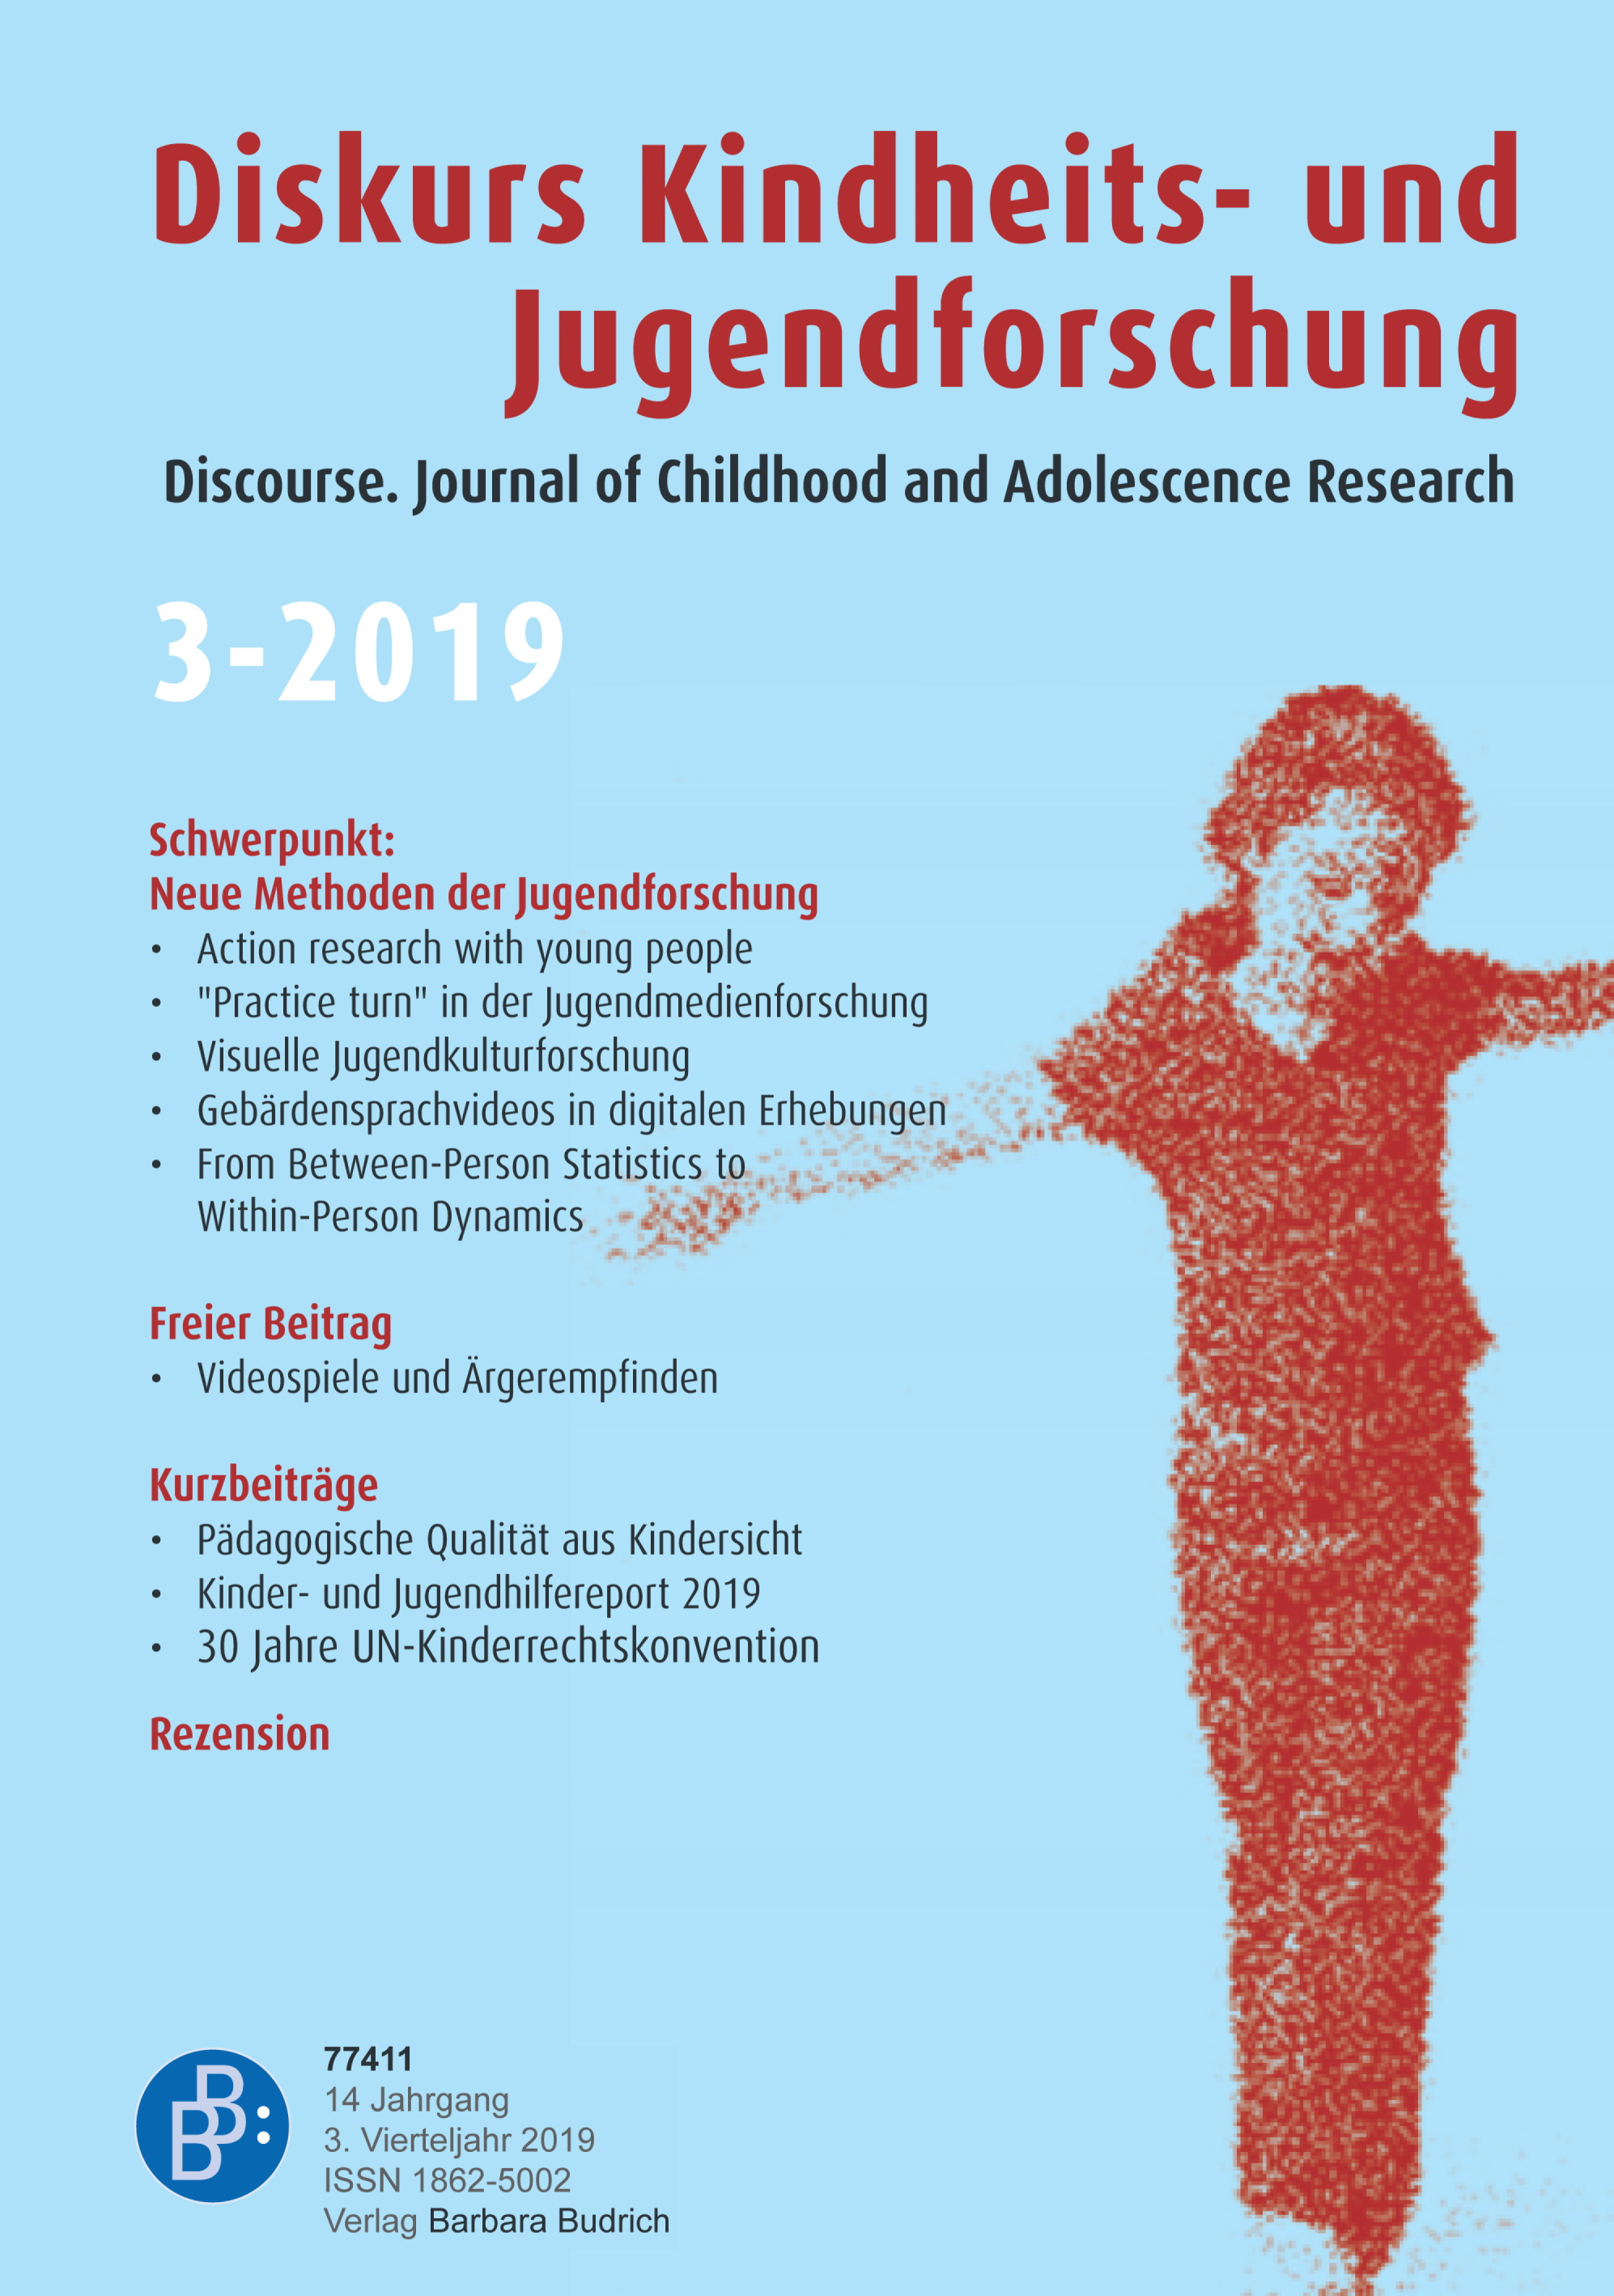 Diskurs Kindheits- und Jugendforschung / Discourse. Journal of Childhood and Adolescence Research 3-2019: Neue Methoden der Jugendforschung